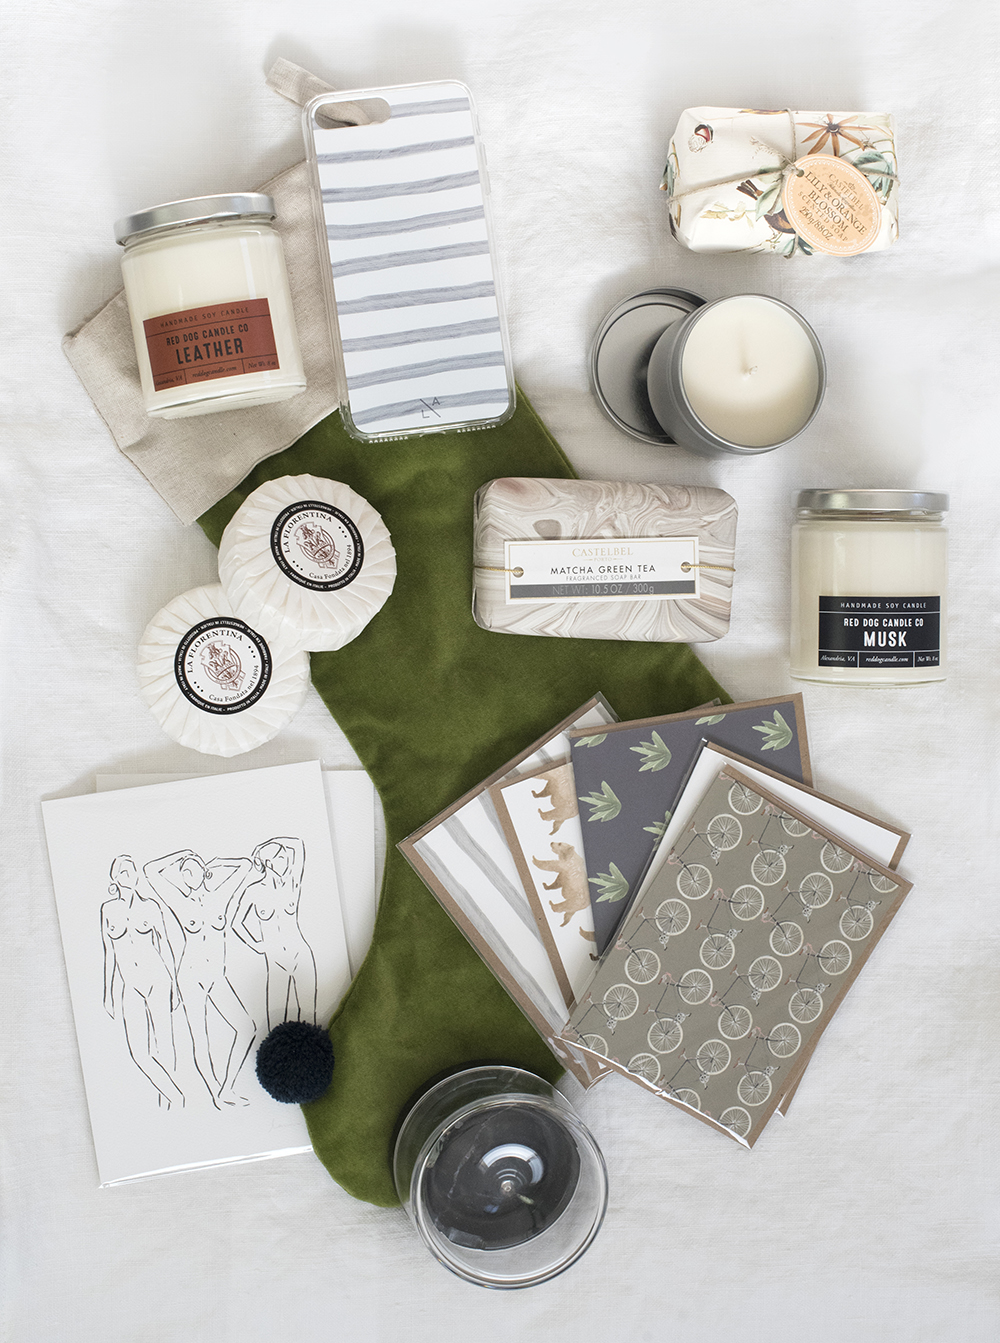 Stocking Stuffer Ideas + A Giveaway - roomfortuesday.com